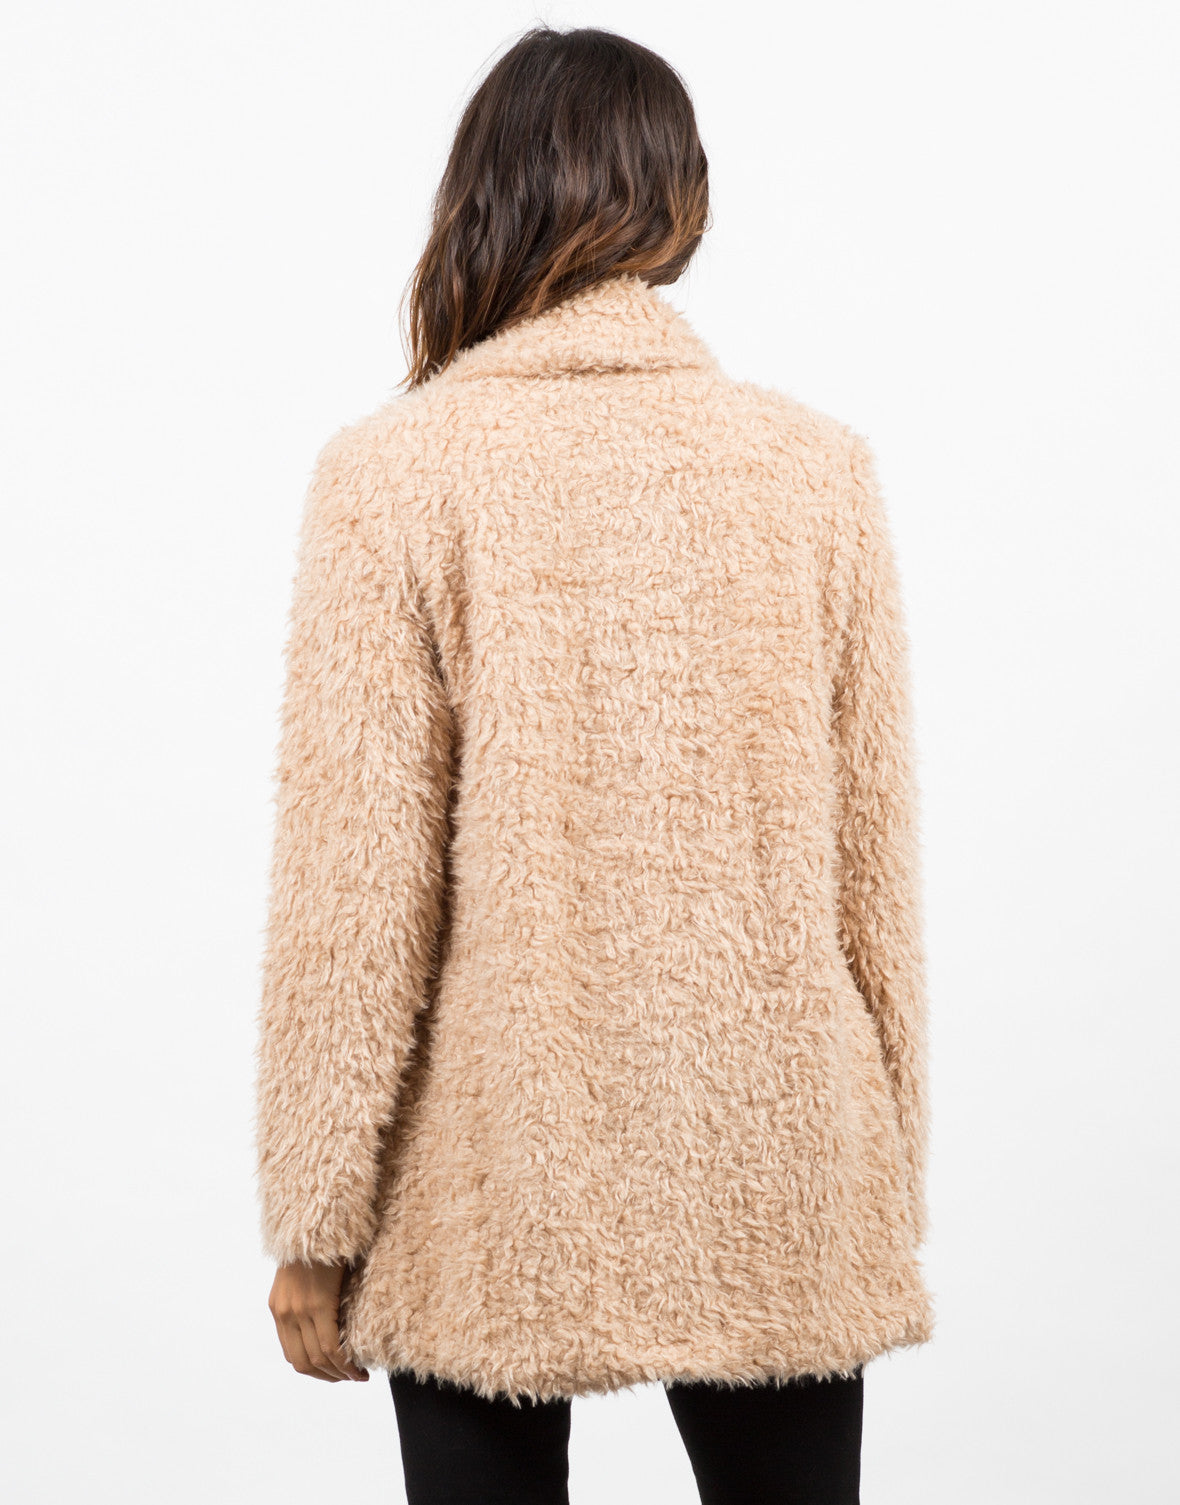 Back View of Shaggy Faux Fur Jacket